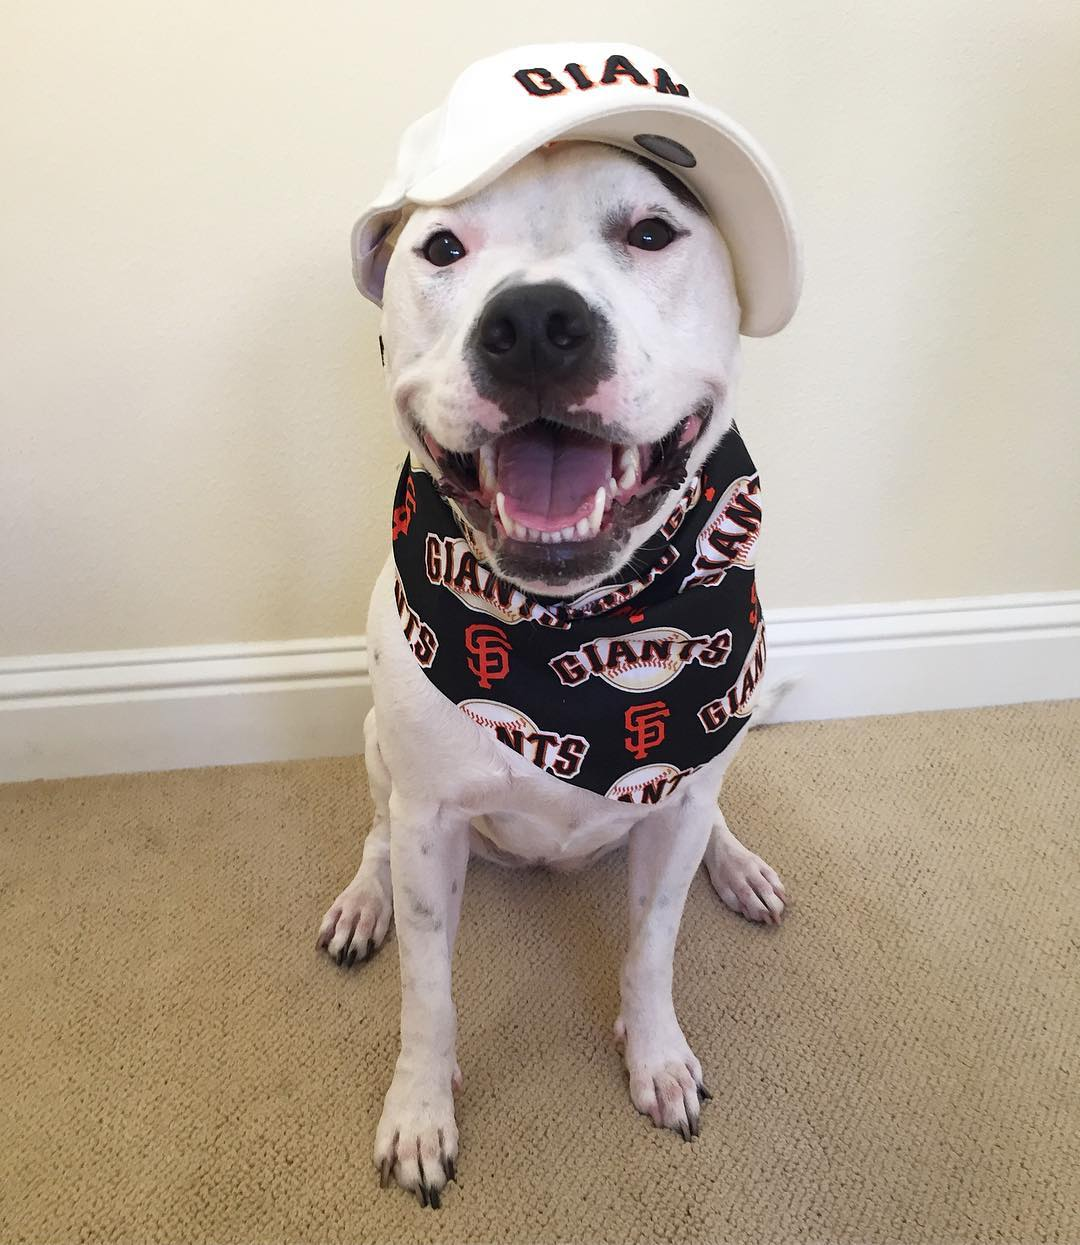 """<div class=""""meta image-caption""""><div class=""""origin-logo origin-image none""""><span>none</span></div><span class=""""caption-text"""">ABC7 viewers are showing off their San Francisco Giants fan pride. Share yours by tagging them #abc7now! (Photo submitted to KGO-TV by @ksadiepitopotamus/Instagram)</span></div>"""